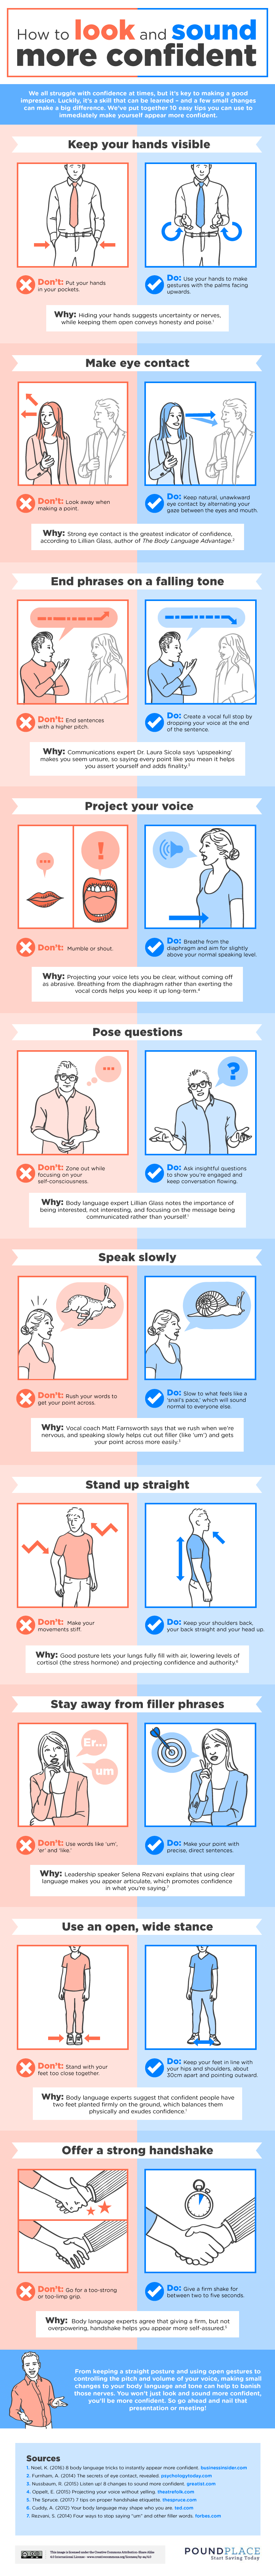 How To Look And Sound More Confident - infographic